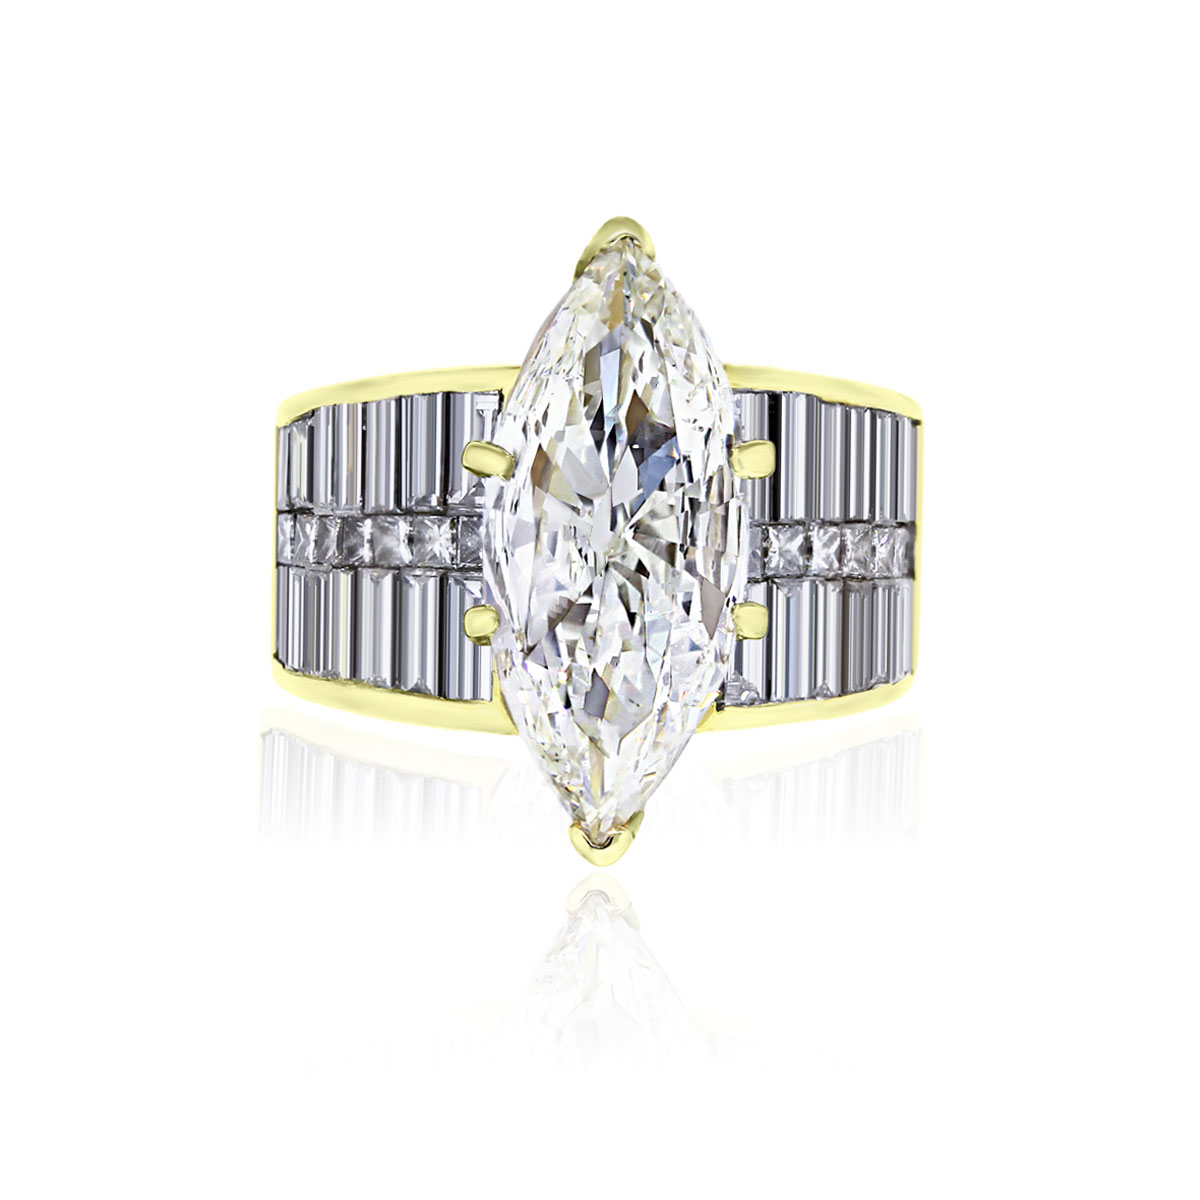 You are viewing this 18k Yellow Gold 4.61ct Marquise and Baguettes Diamond Ring!